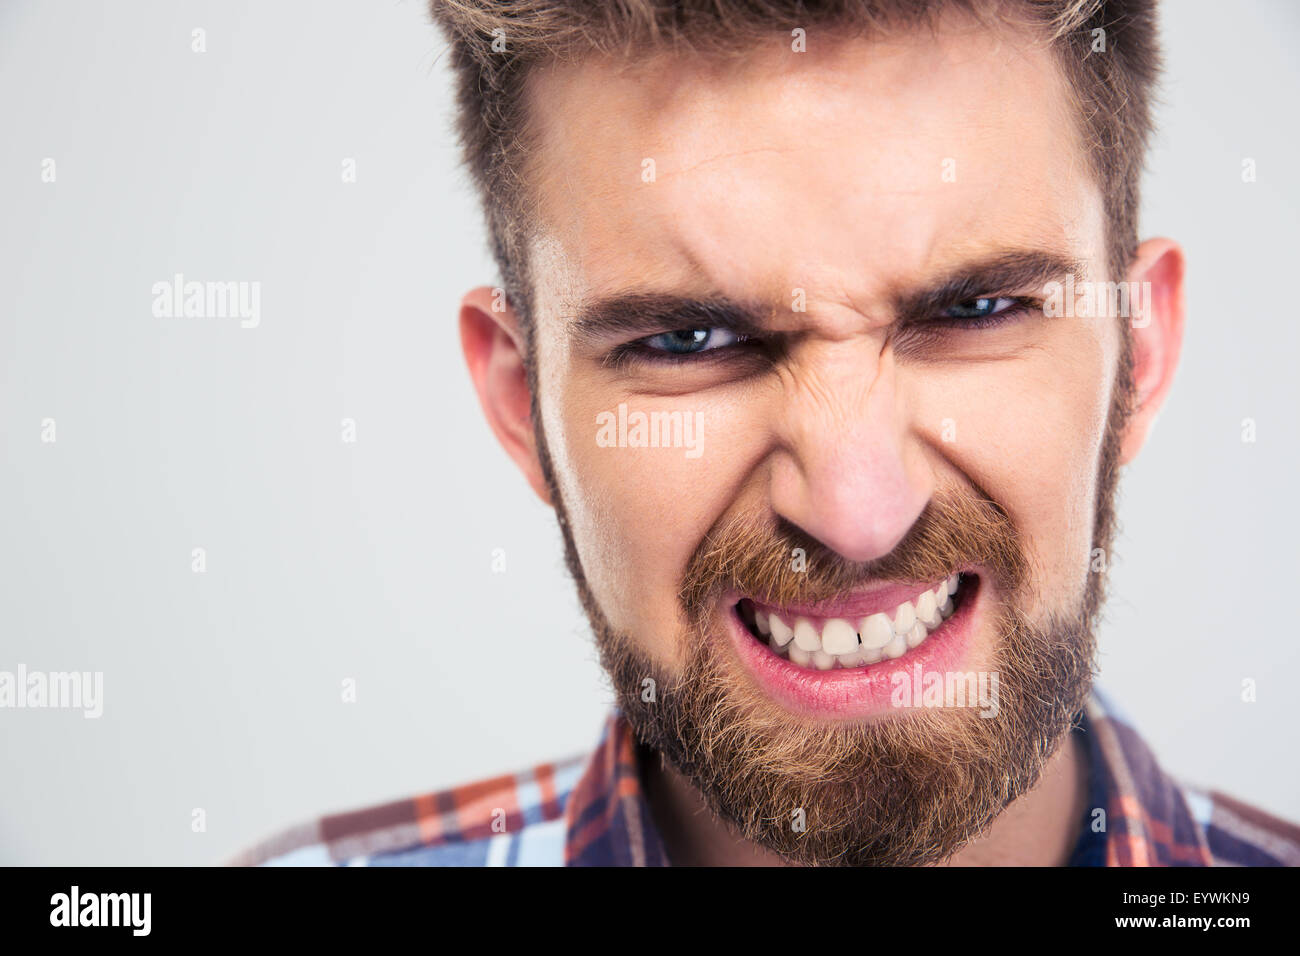 Closeup portrait of angry man looking at camera isolated on a white background - Stock Image